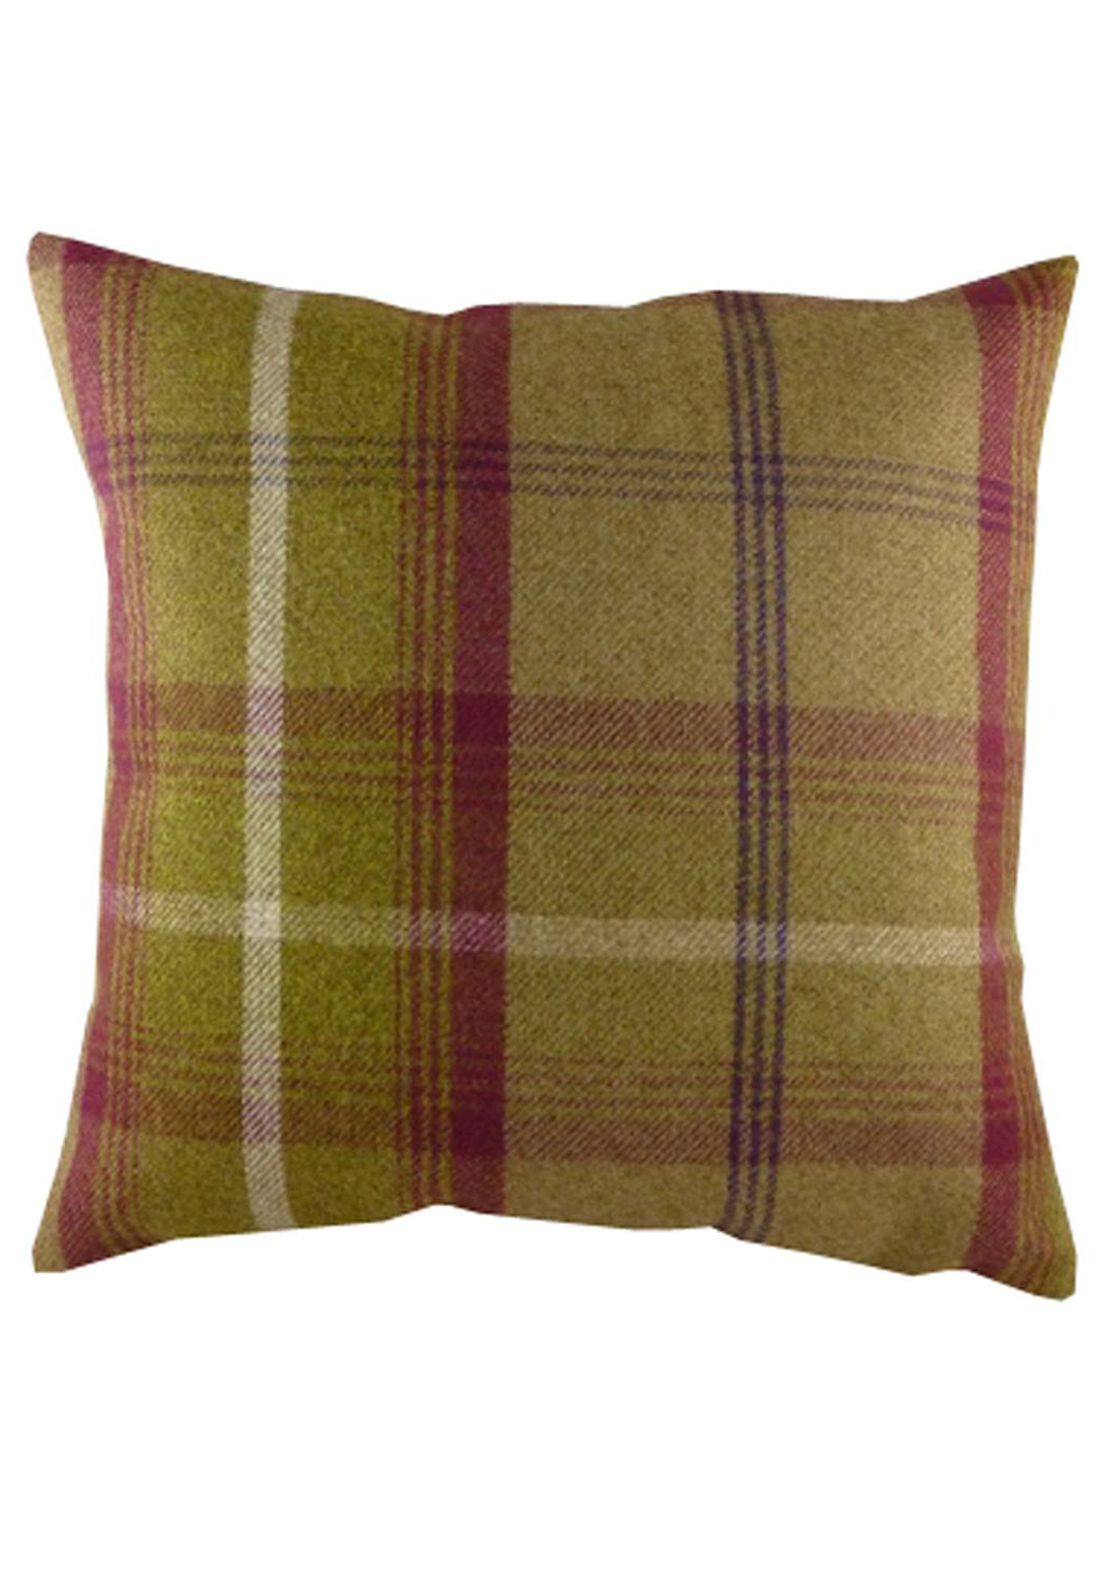 Evans Balmoral Autumn Filled Cushion, 42 x 42cm Heather